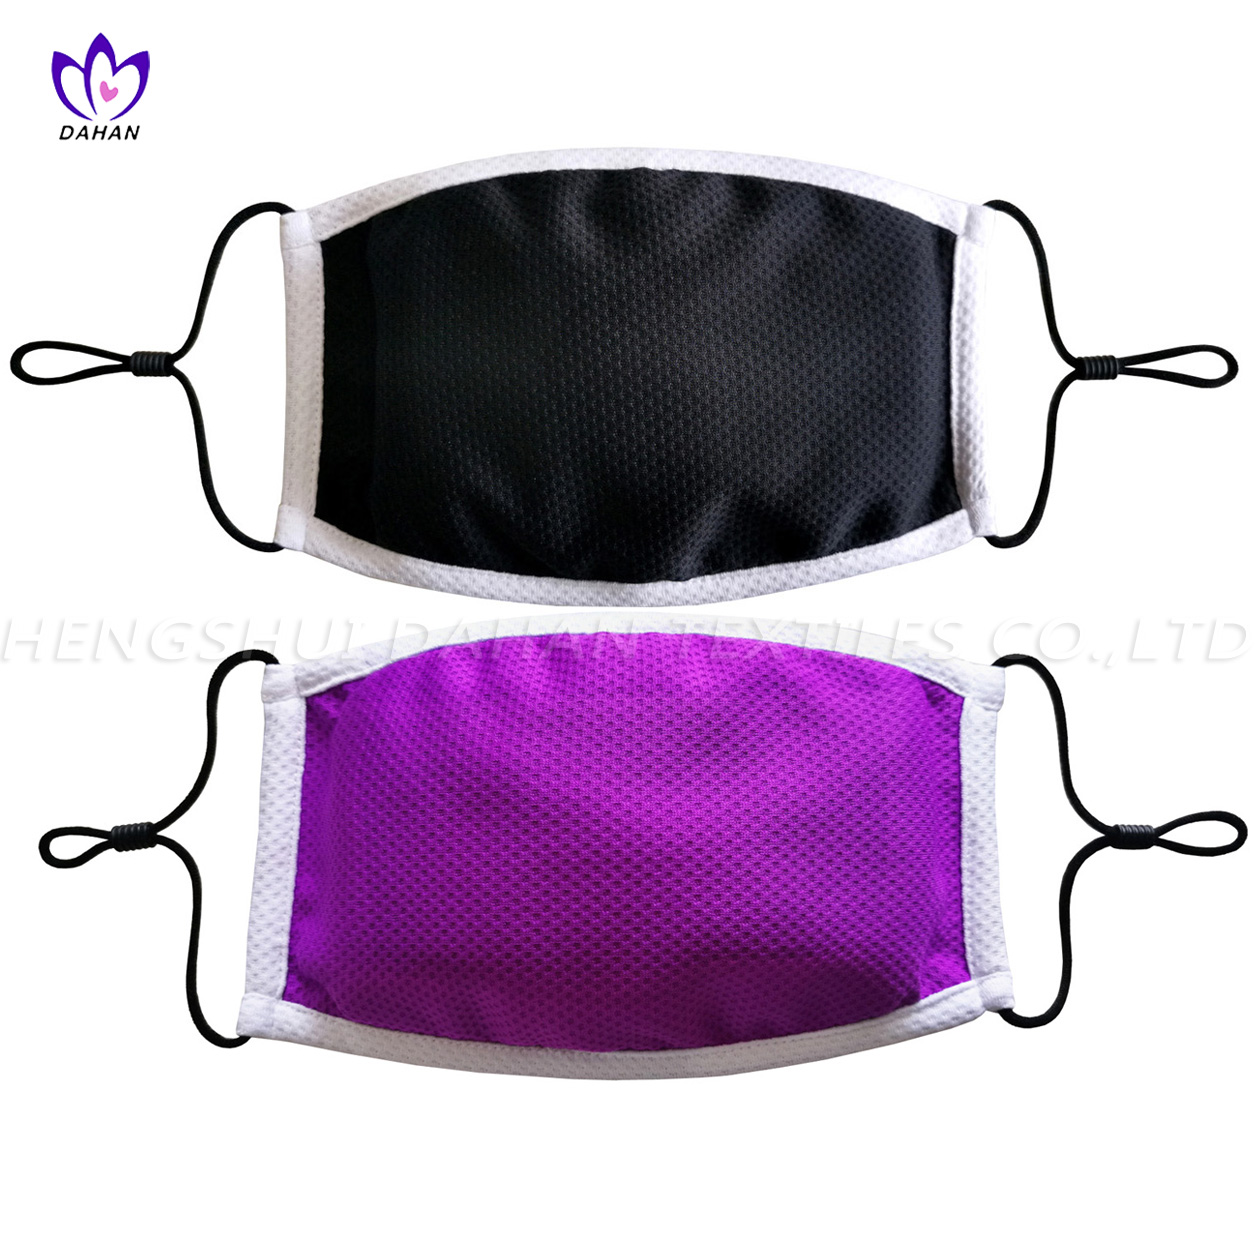 Solid color microfiber mask. EPP06